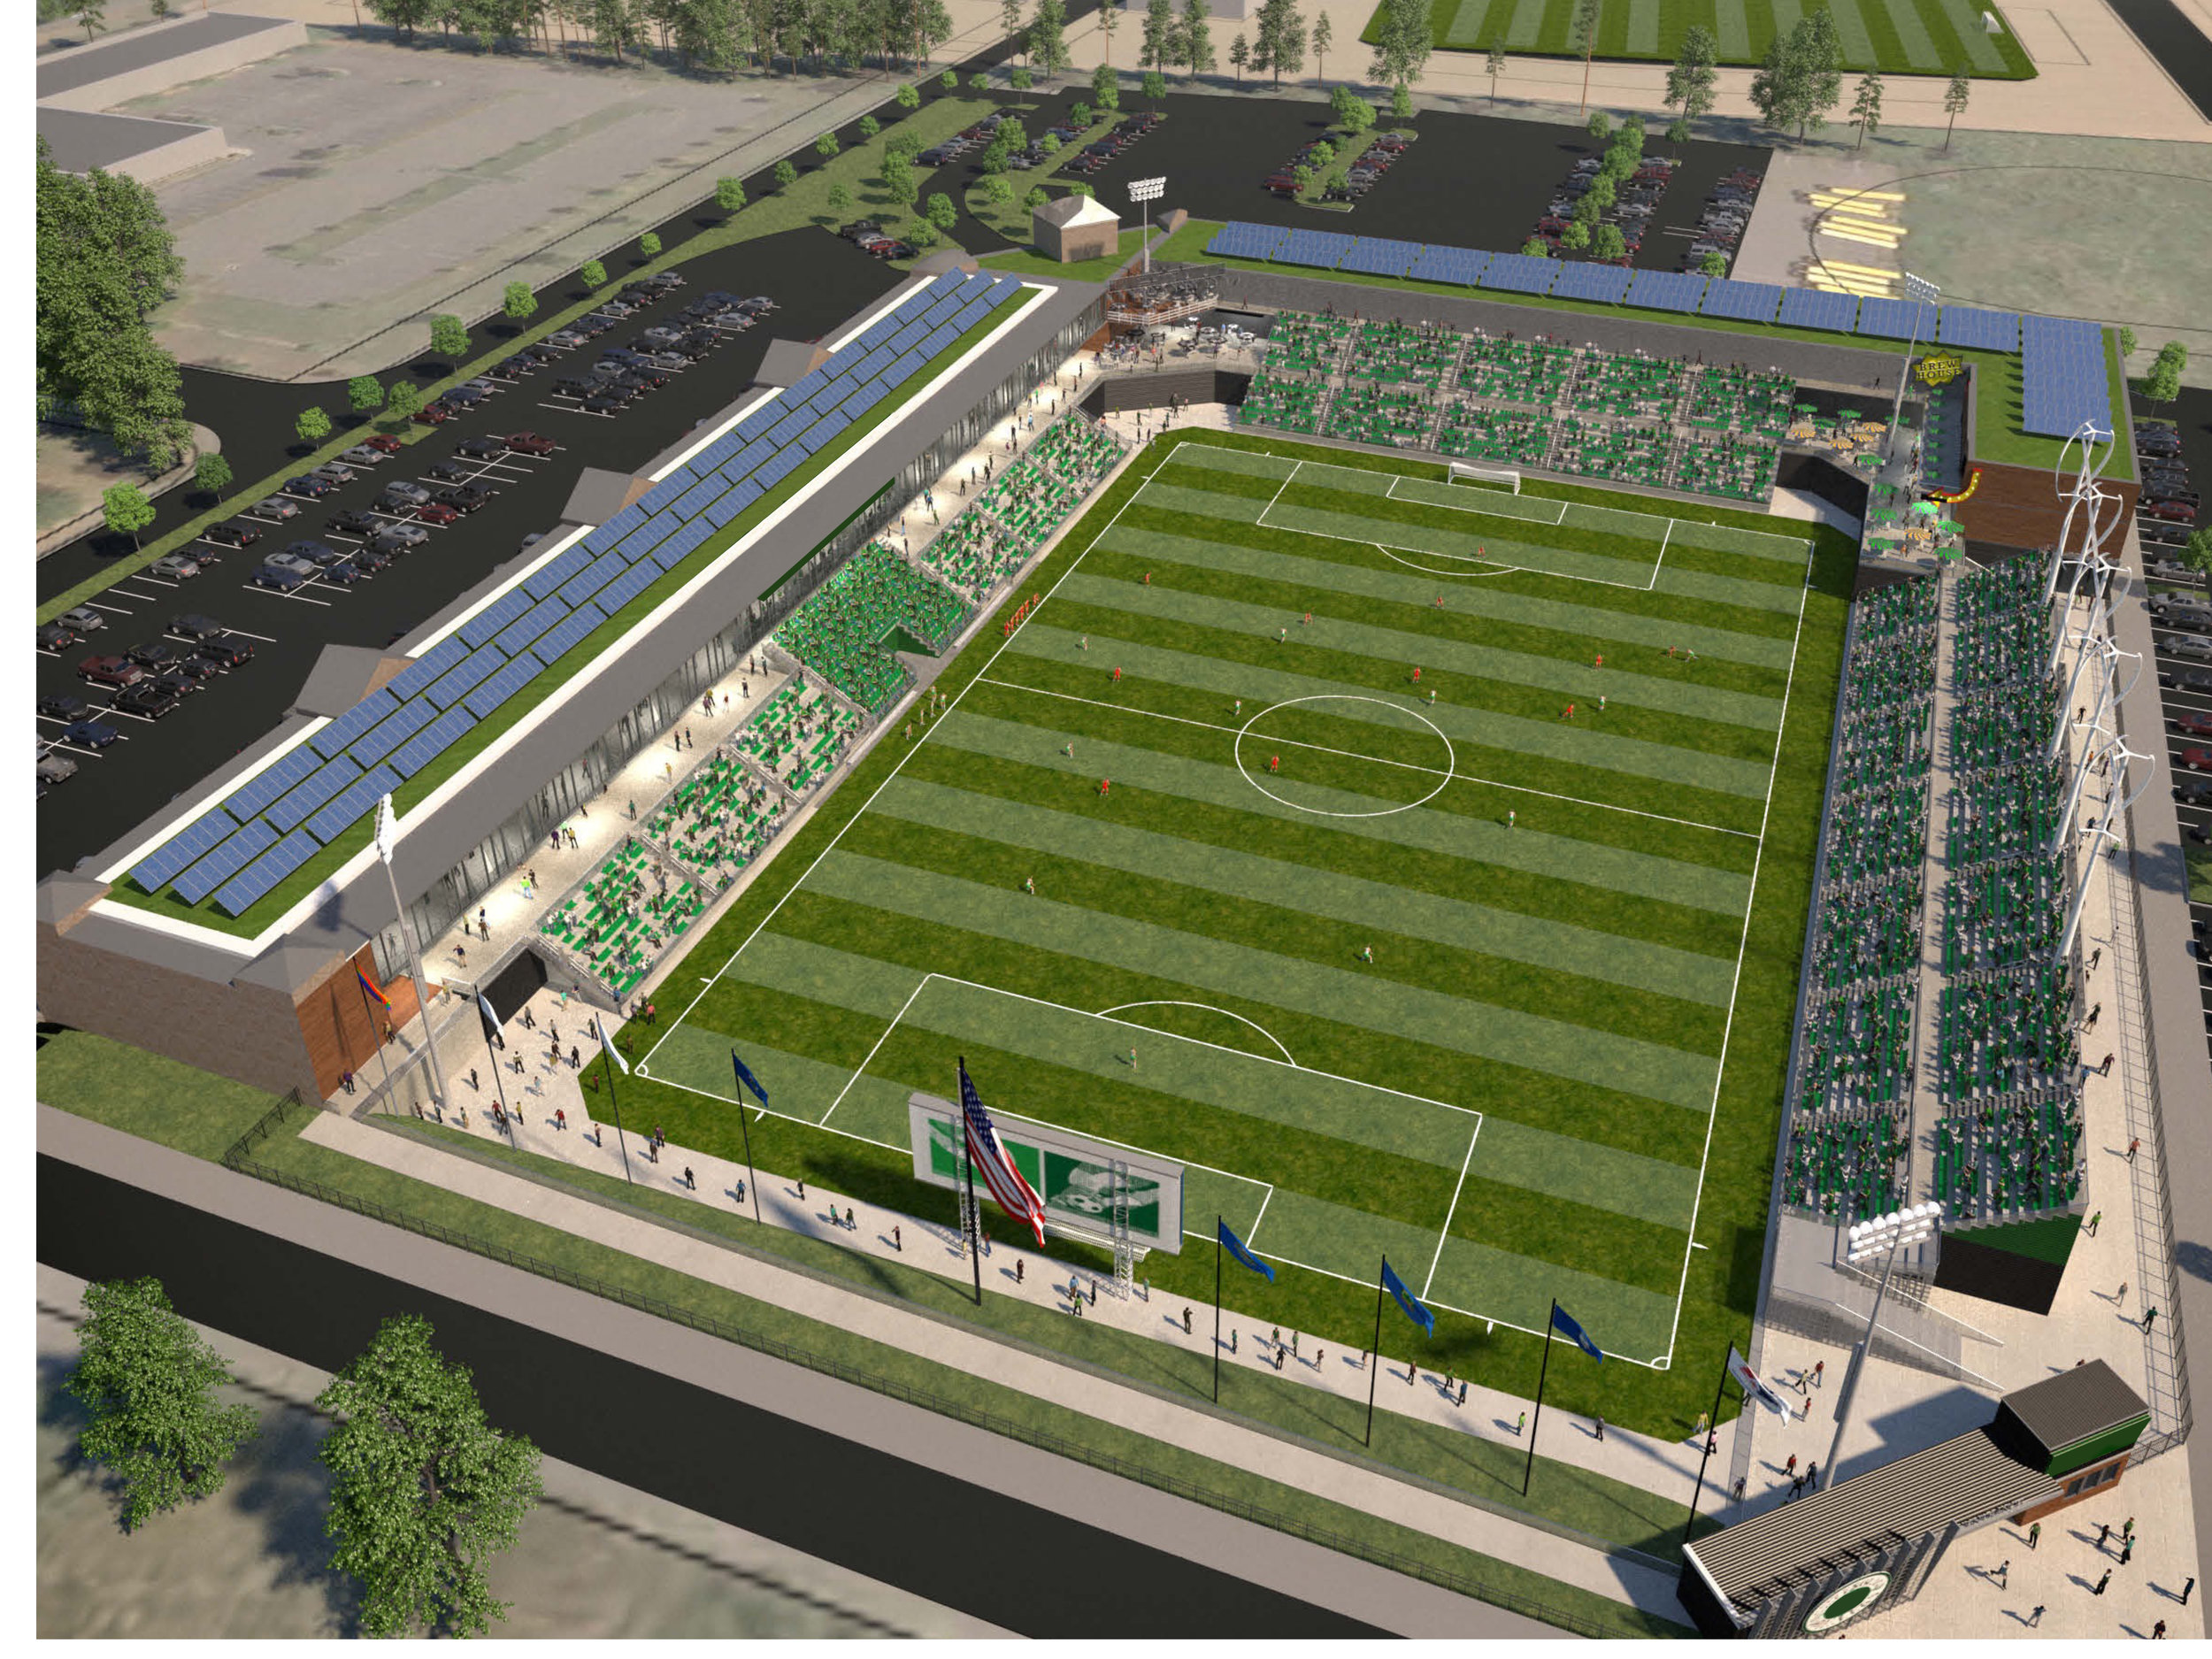 A conceptual rendering of the stadium. (Design not final. Rendering courtesy Stantec.)